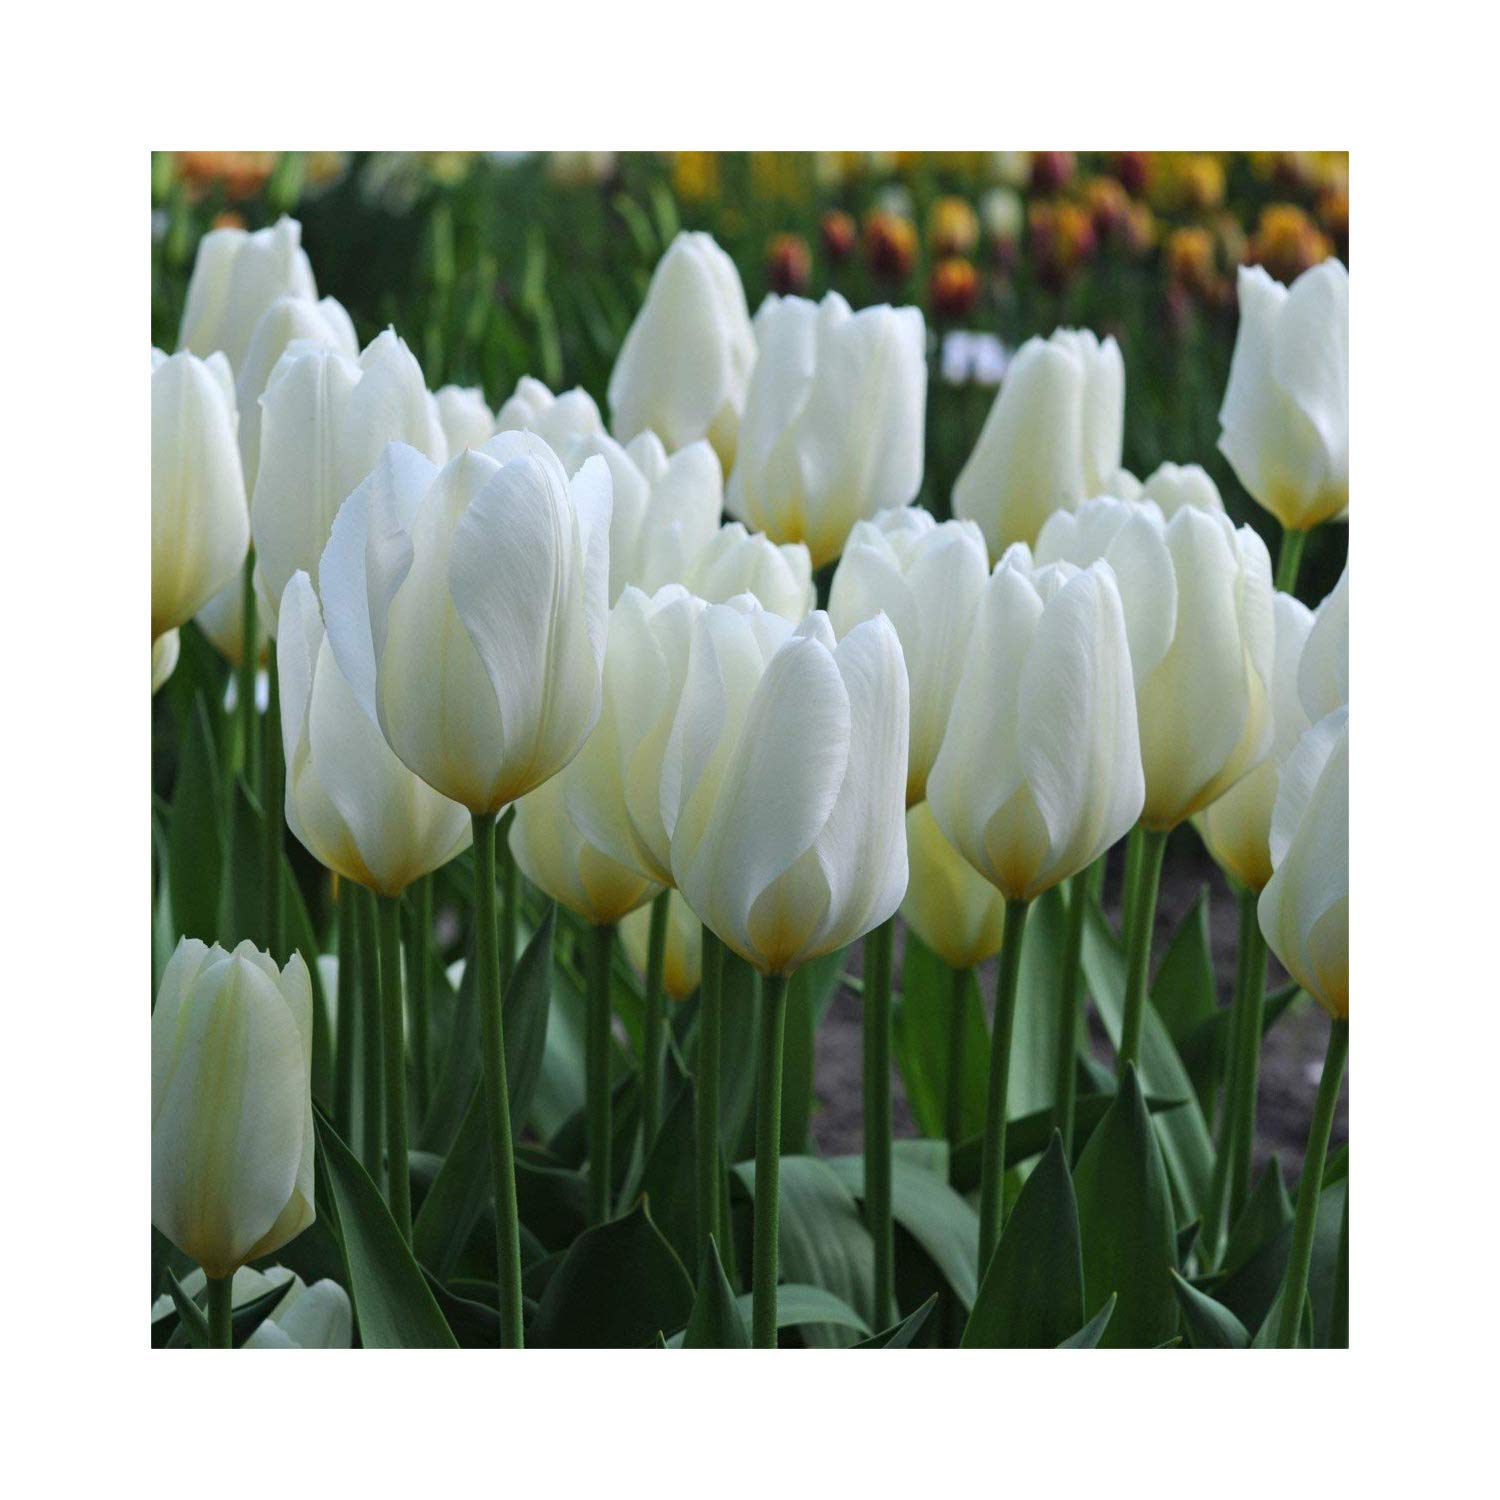 50 Tulip 'Purissima' White Tulips Spring Flowering Bulbs, Flowering Guarantee by Plug Plants Express Limited